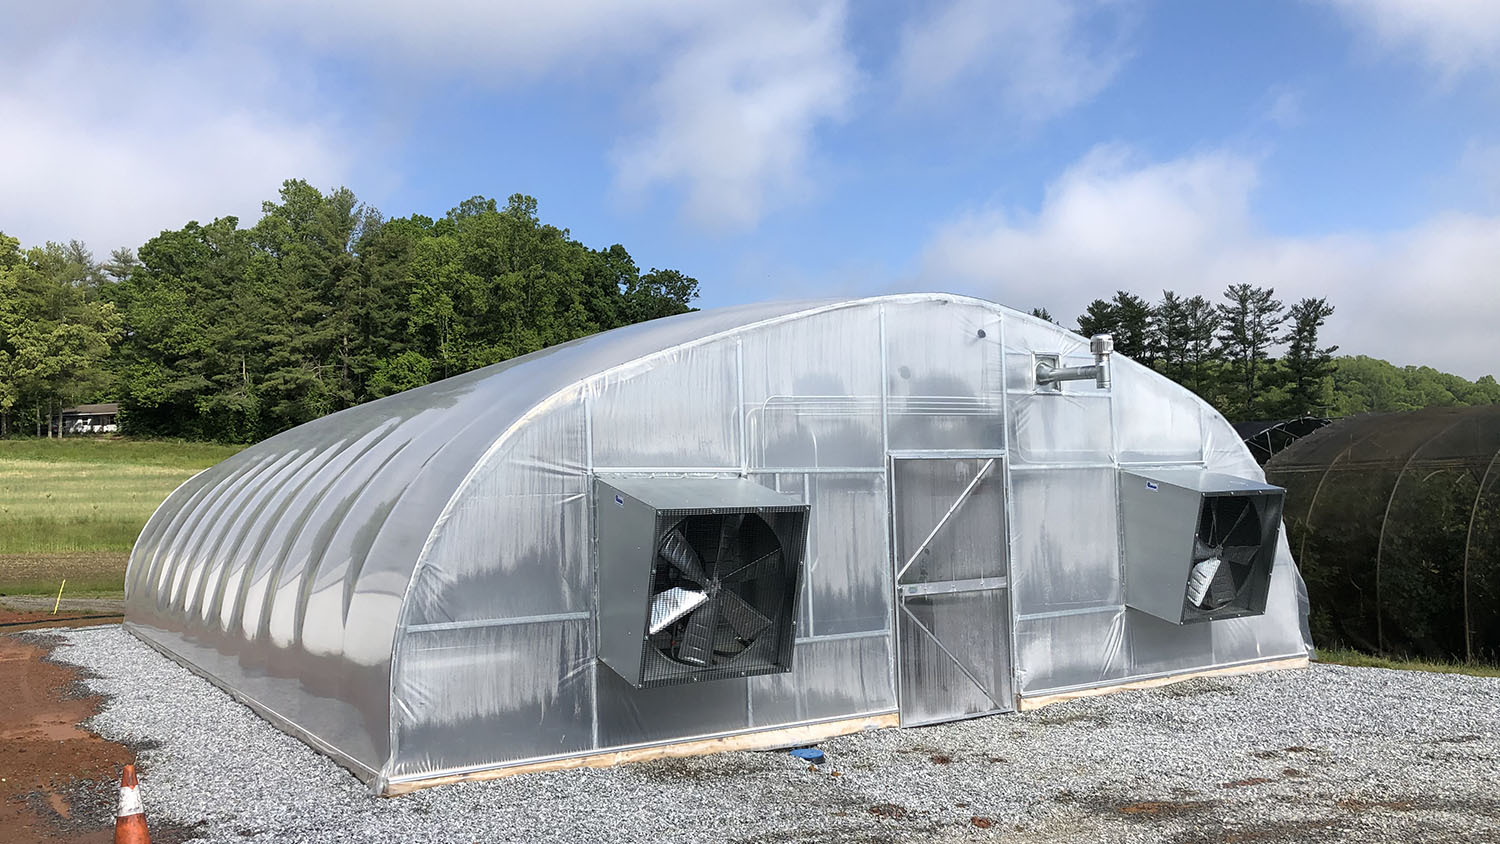 The new greenhouse at Mountain Horticultural Crops Research and Extension Center in western North Carolina.